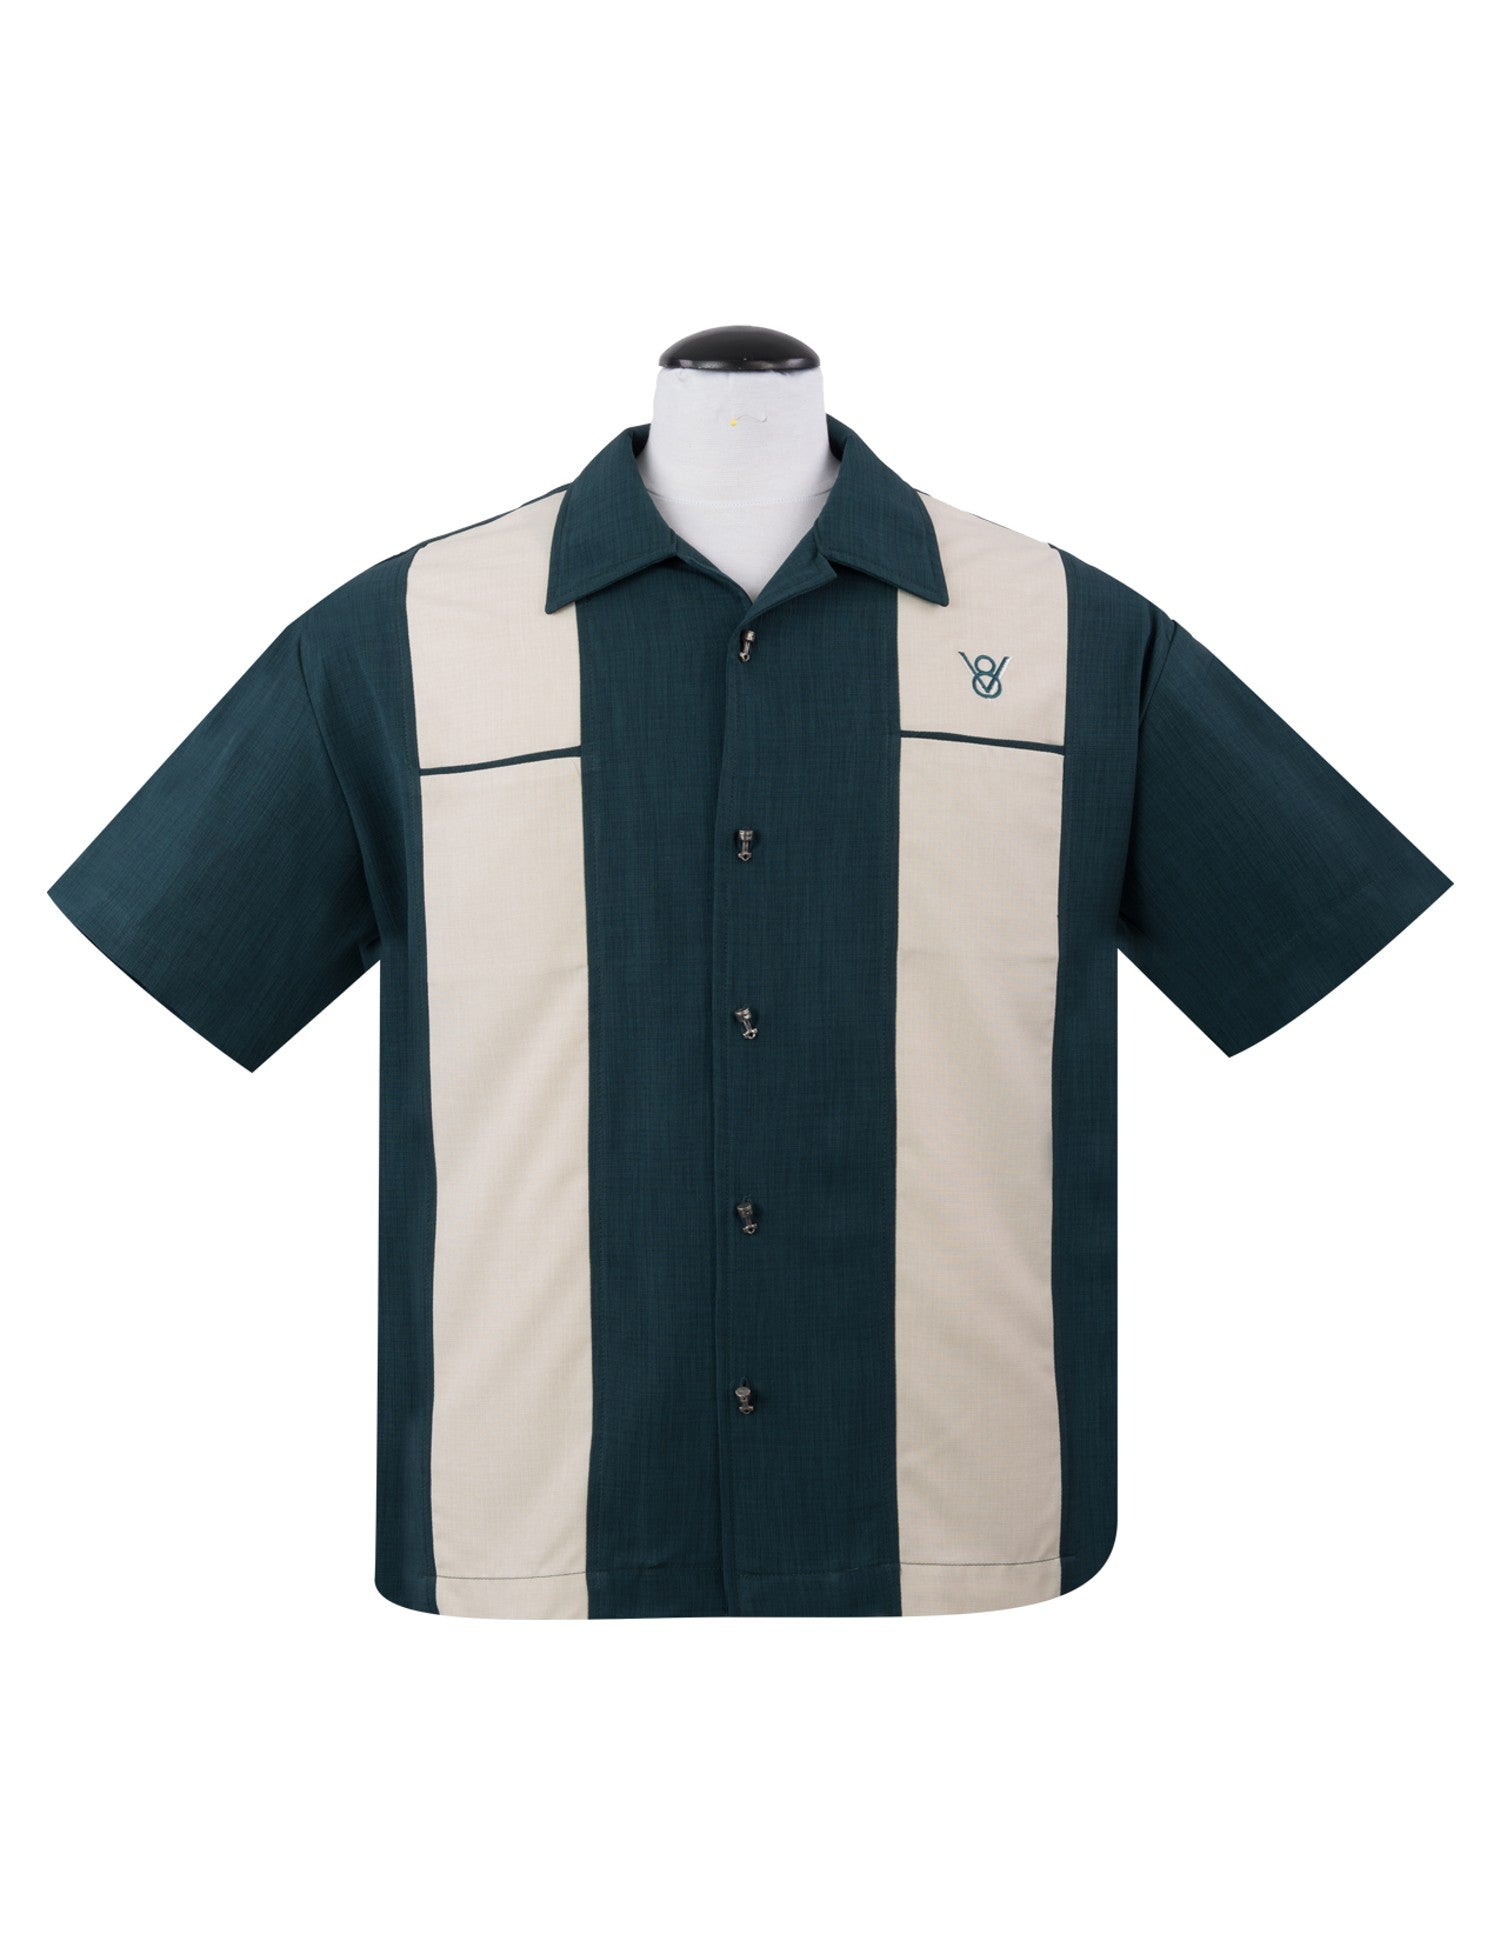 Steady Classy Piston Button Up in Teal Piston Button Embroidered V8 Symbol Retro - Cool Hot Fashions